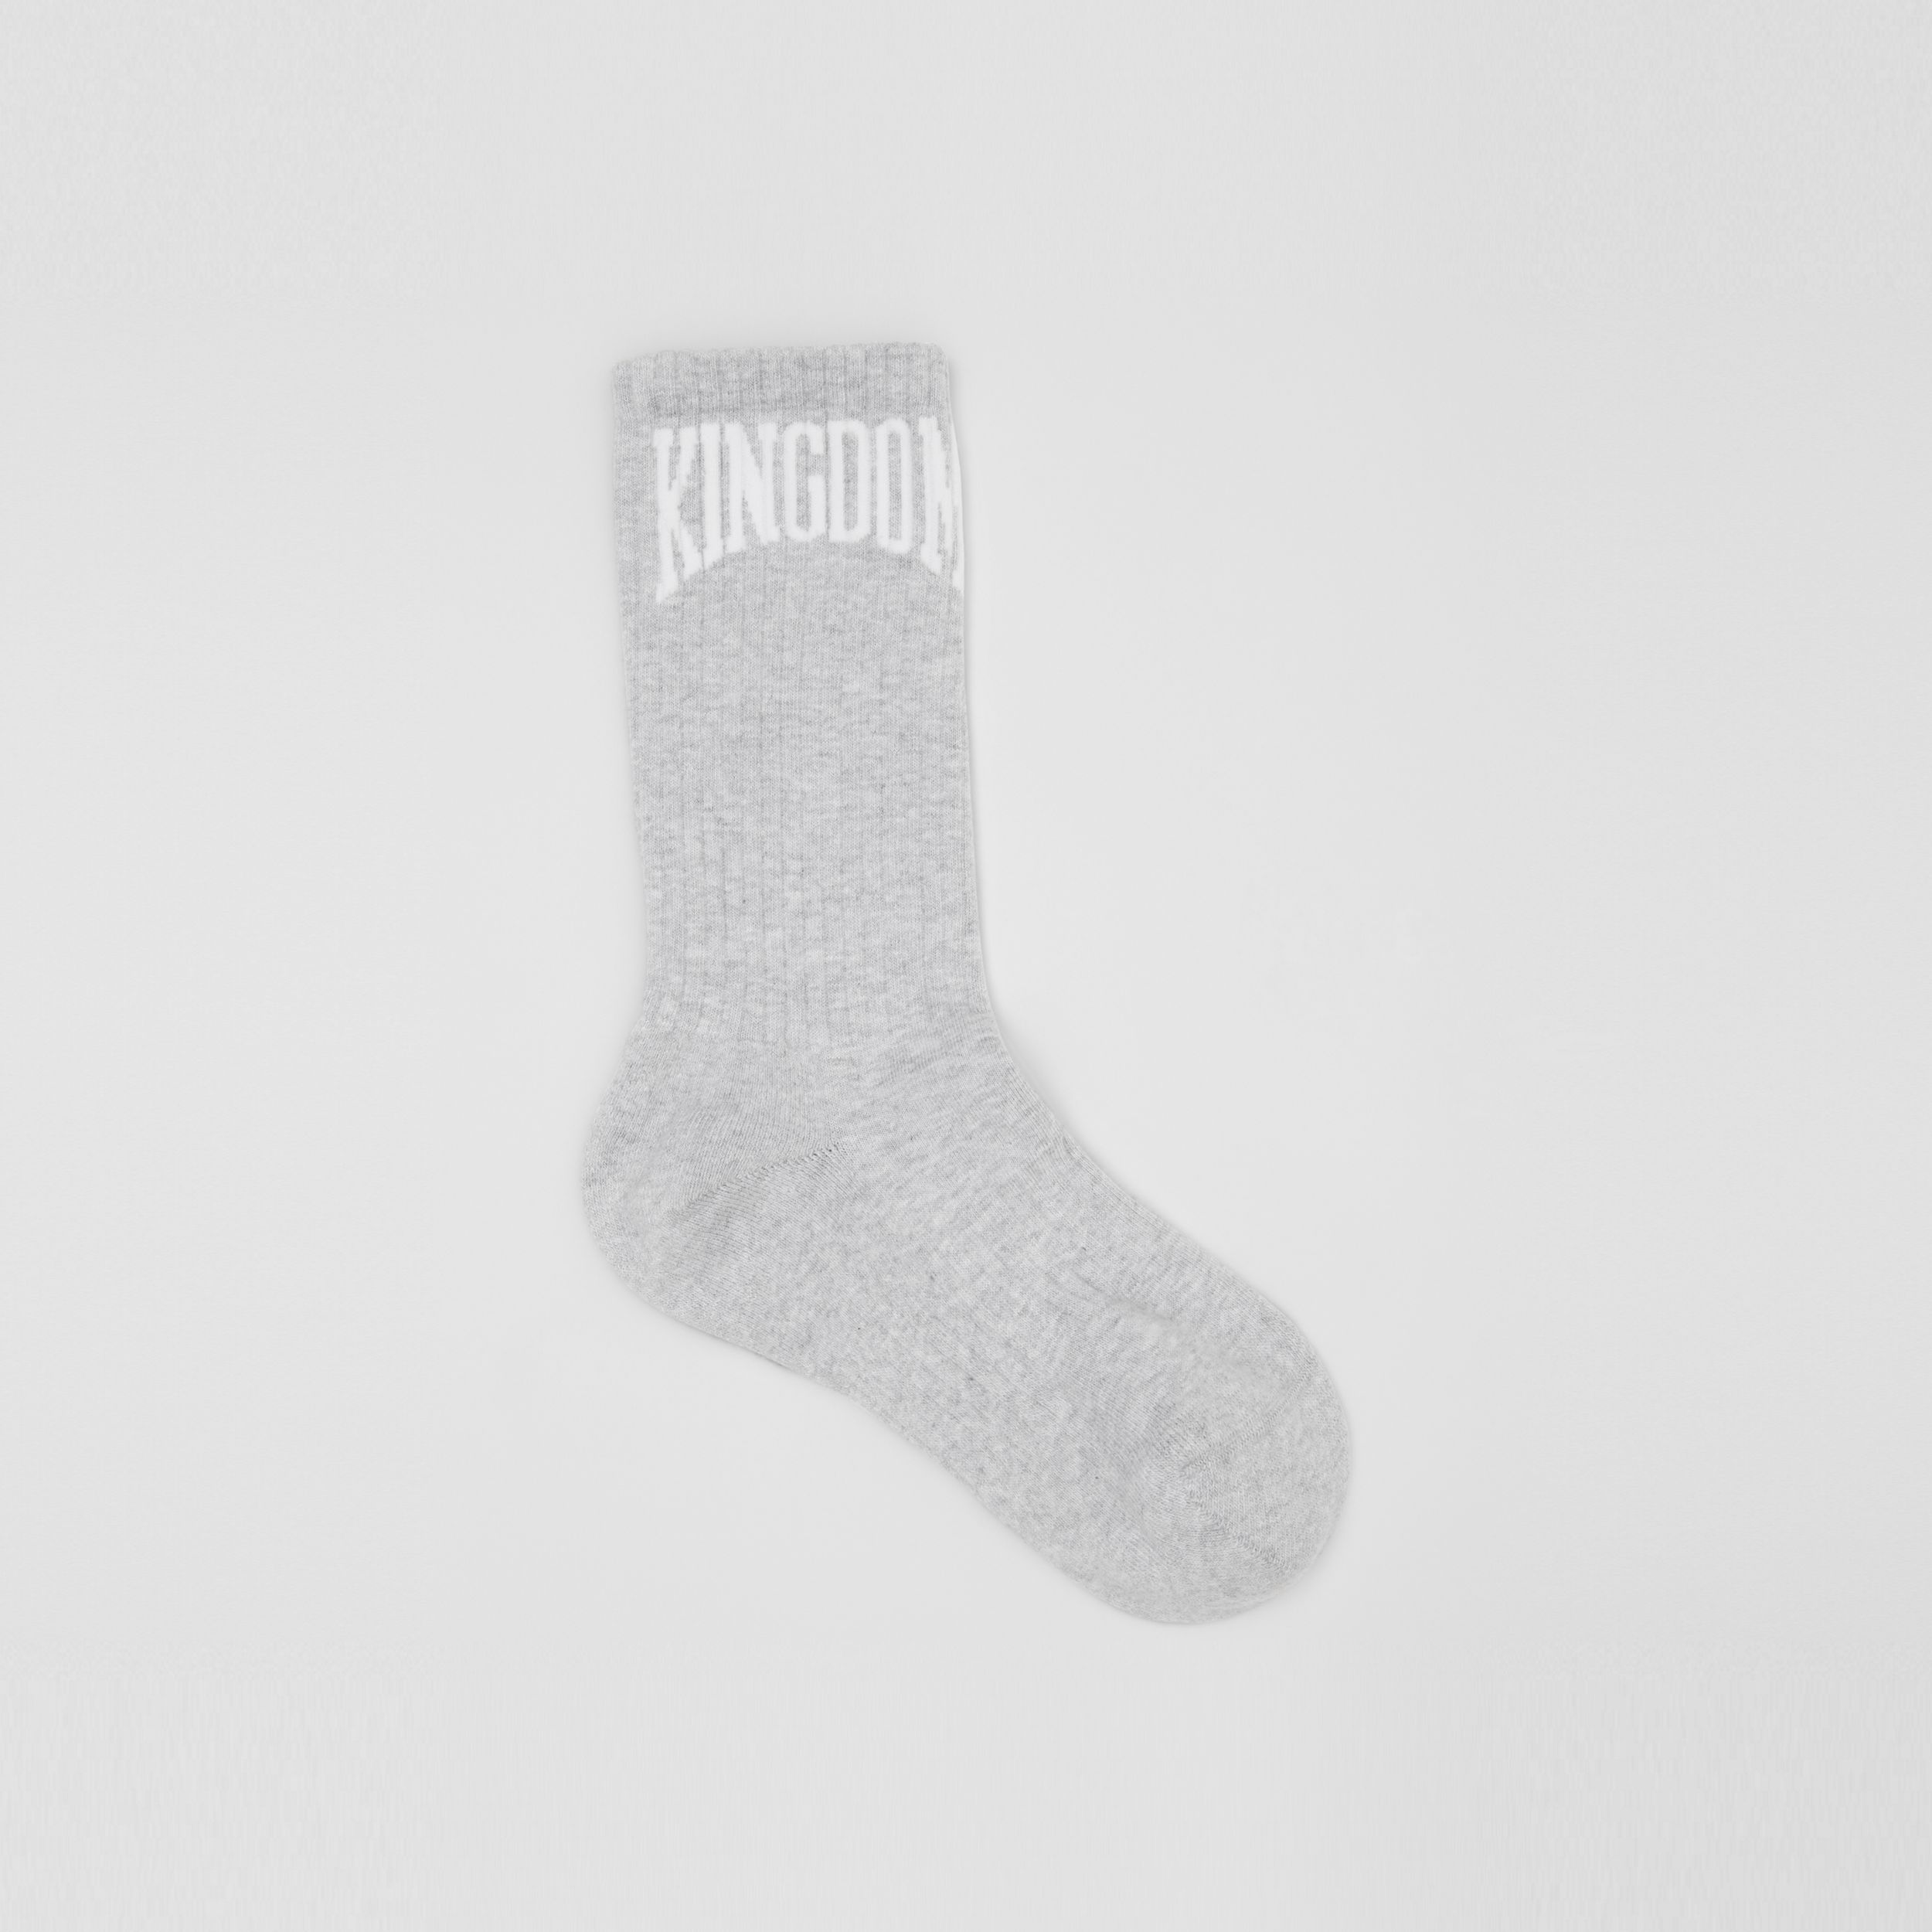 Kingdom Intarsia Cotton Blend Socks in Pebble Grey | Burberry - 1